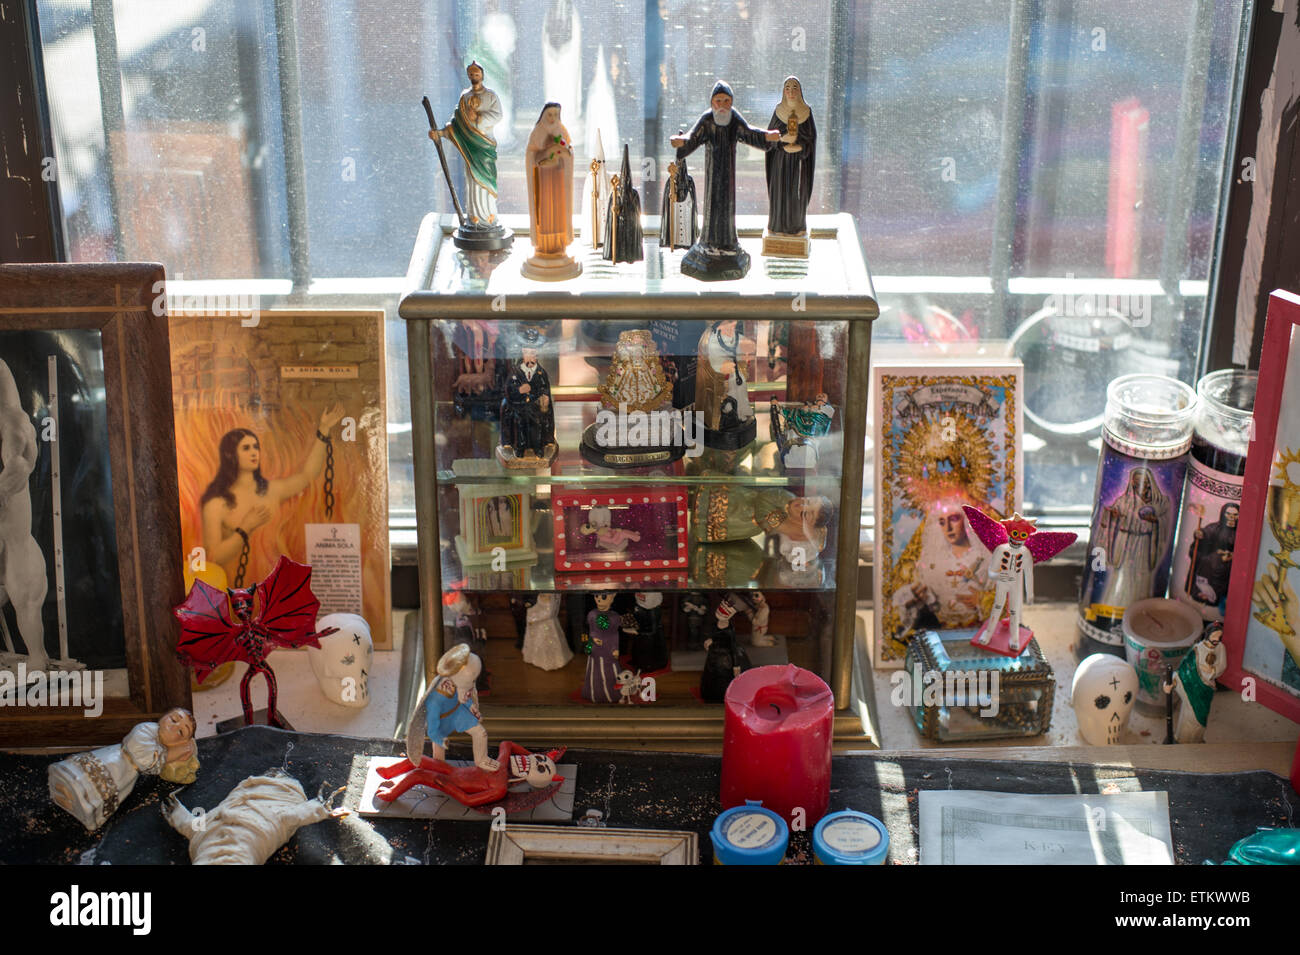 Window display of death-centric and religious figures at the Morbid ...